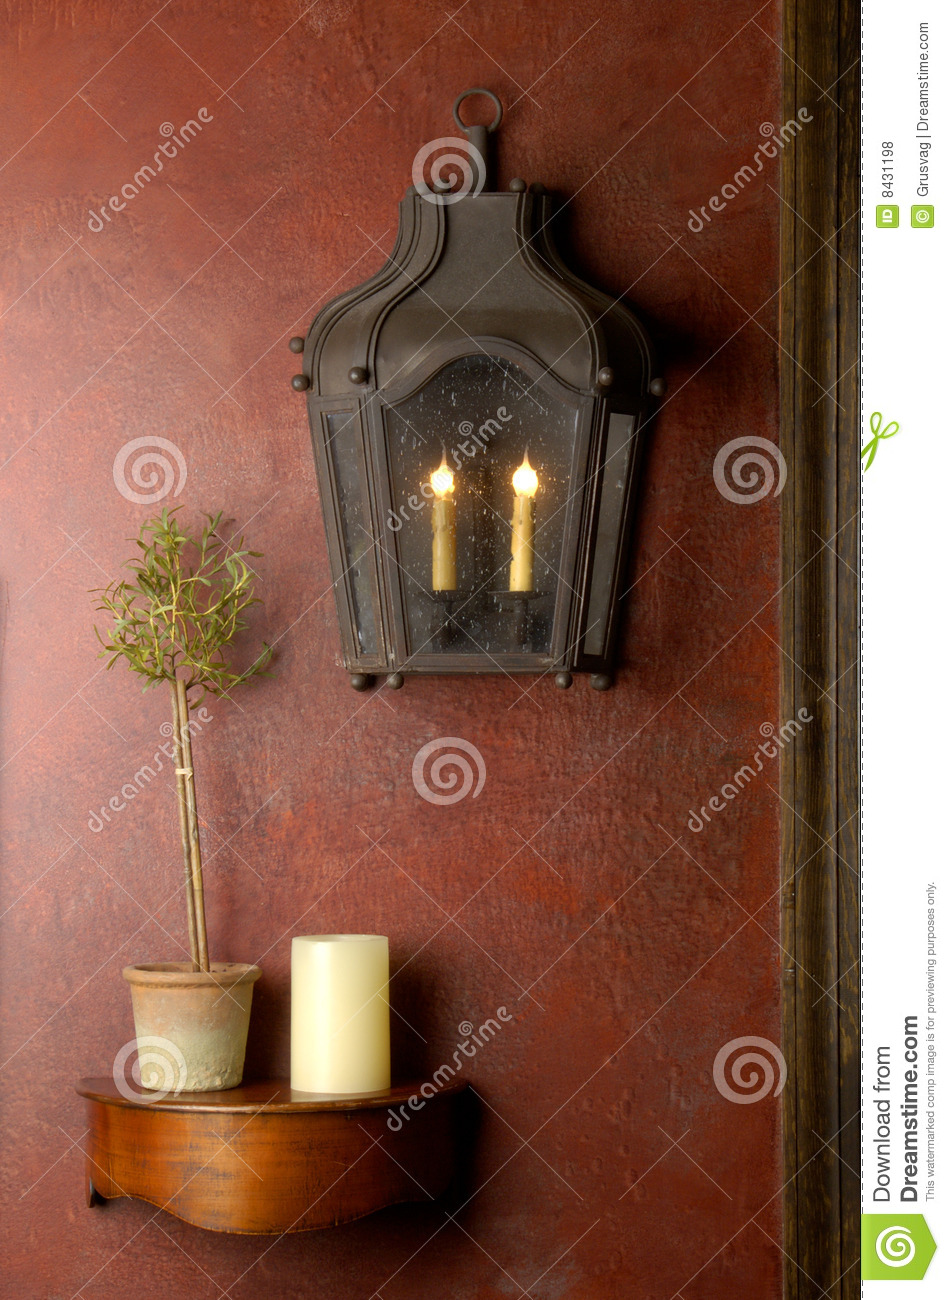 Red wall with lantern and small wooden shelf.